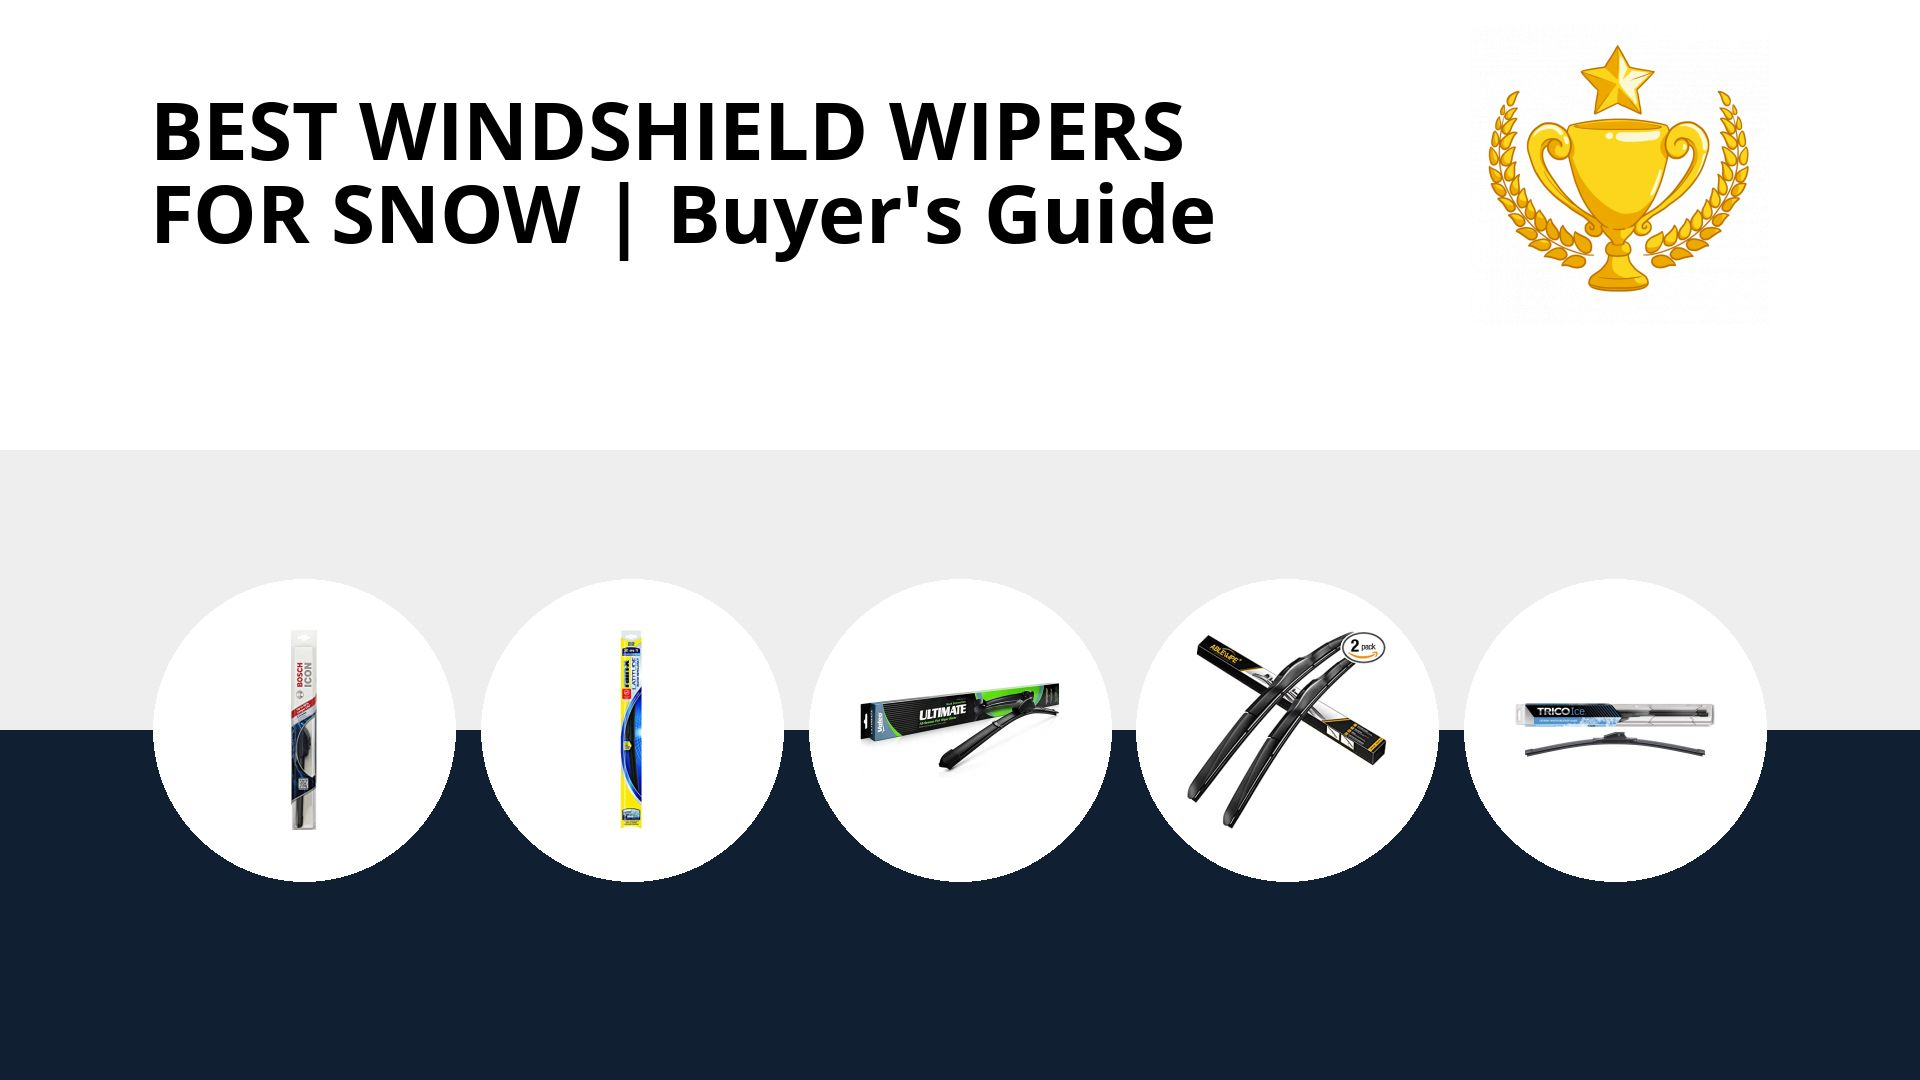 Best Windshield Wipers For Snow: image